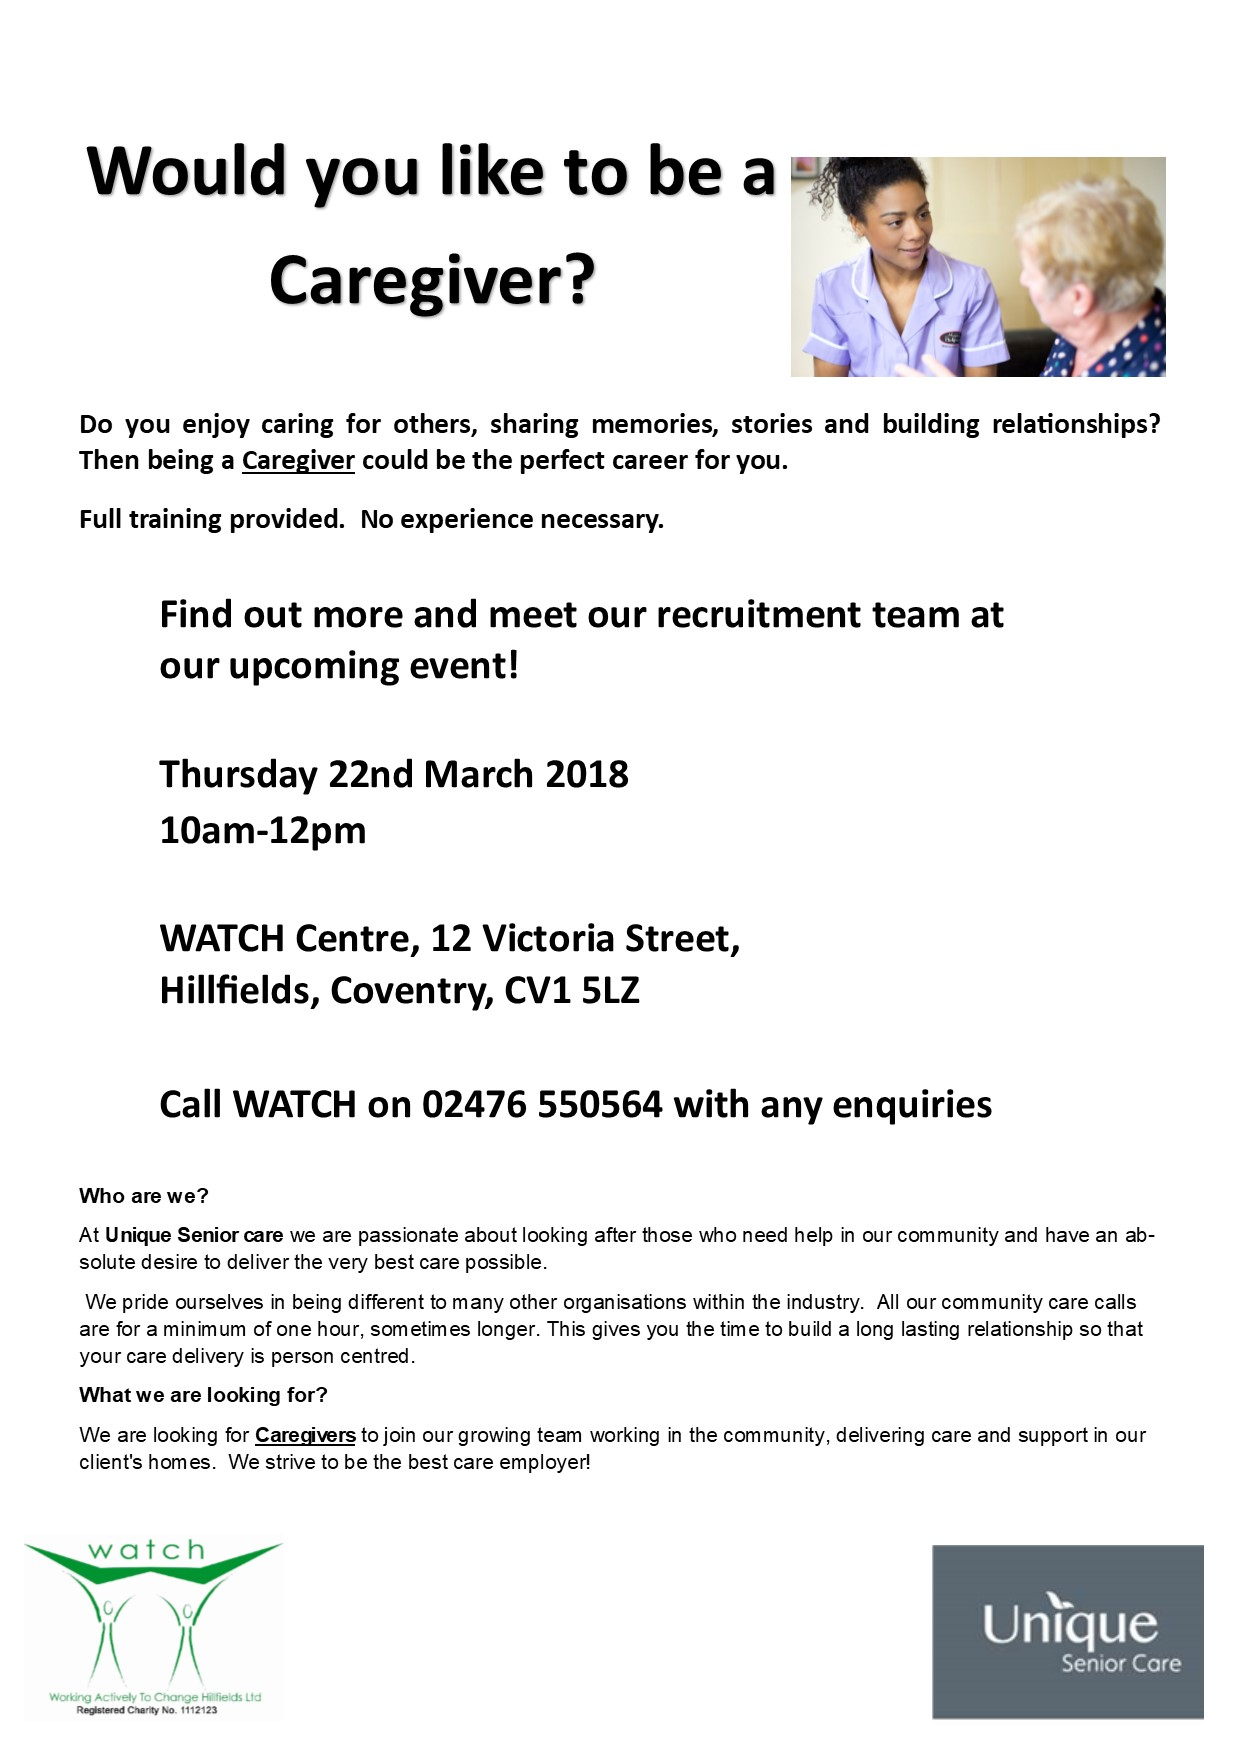 Care Event At WATCH Centre Thursday 22nd March